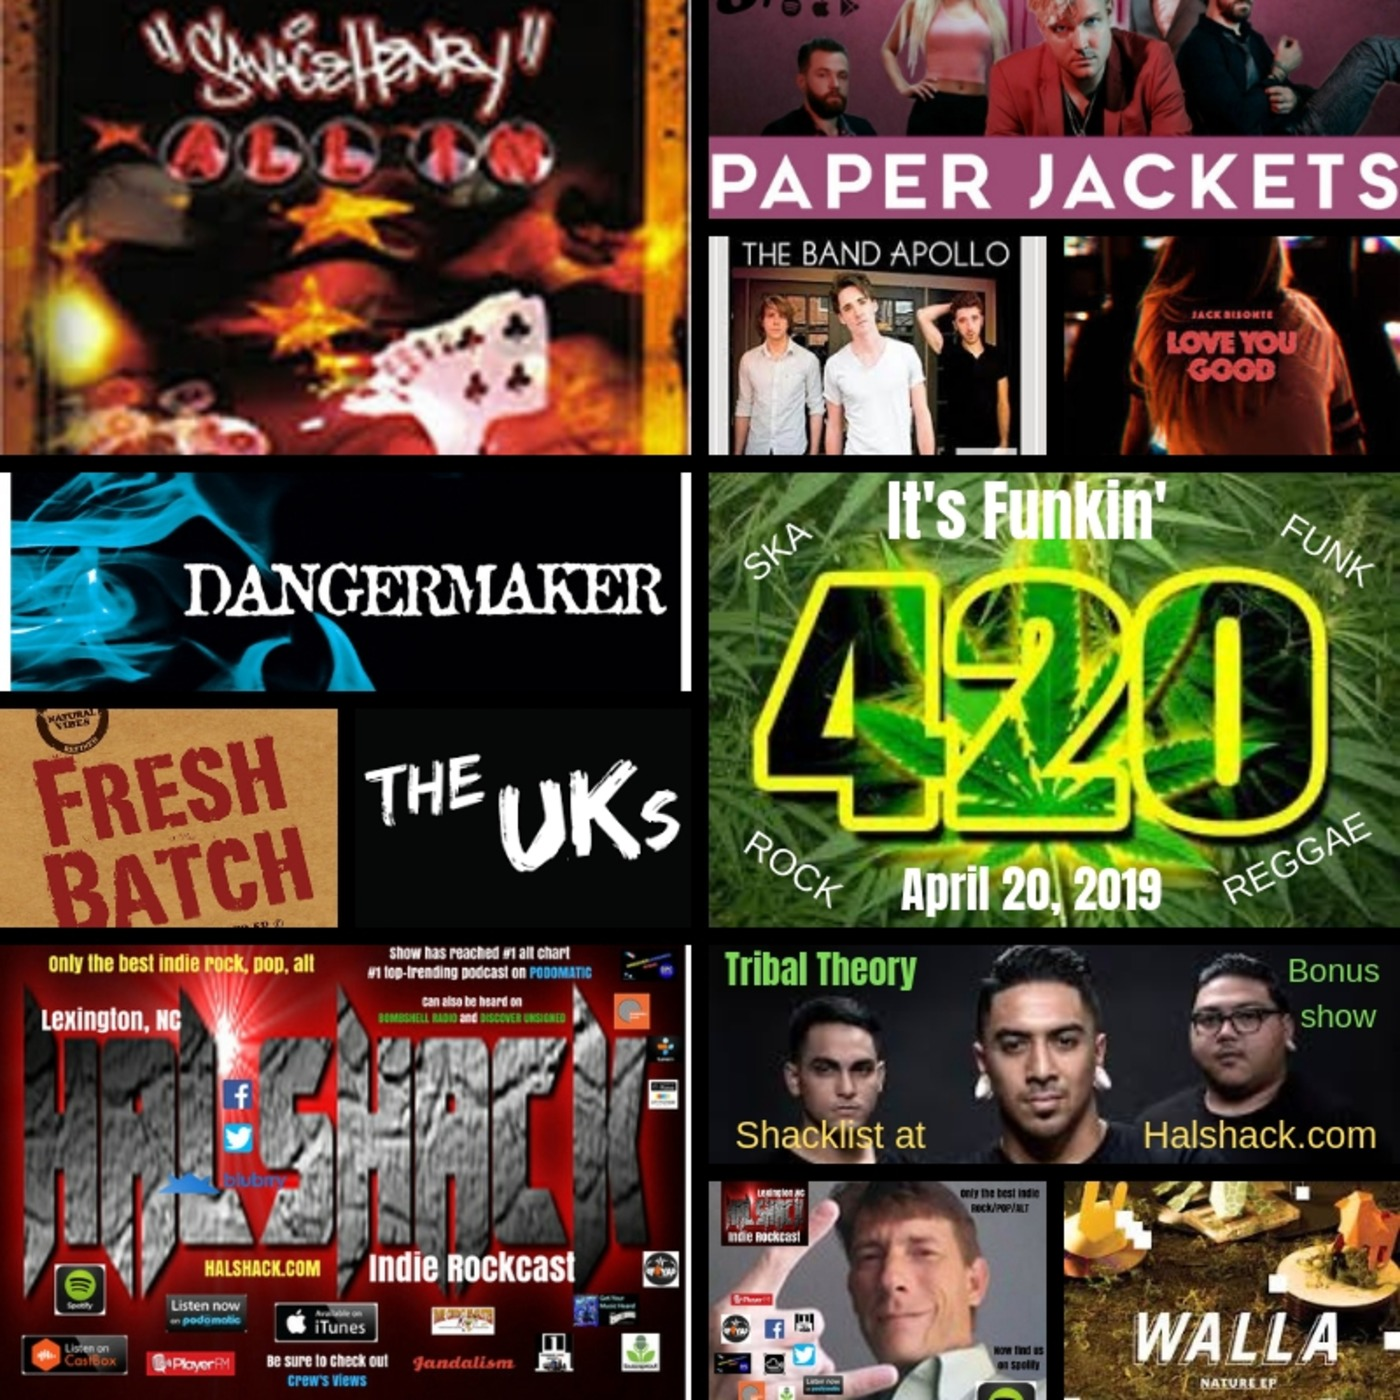 Halshack (ep 14.5) It's Funkin' 420 (April 20, 2019) bonus show